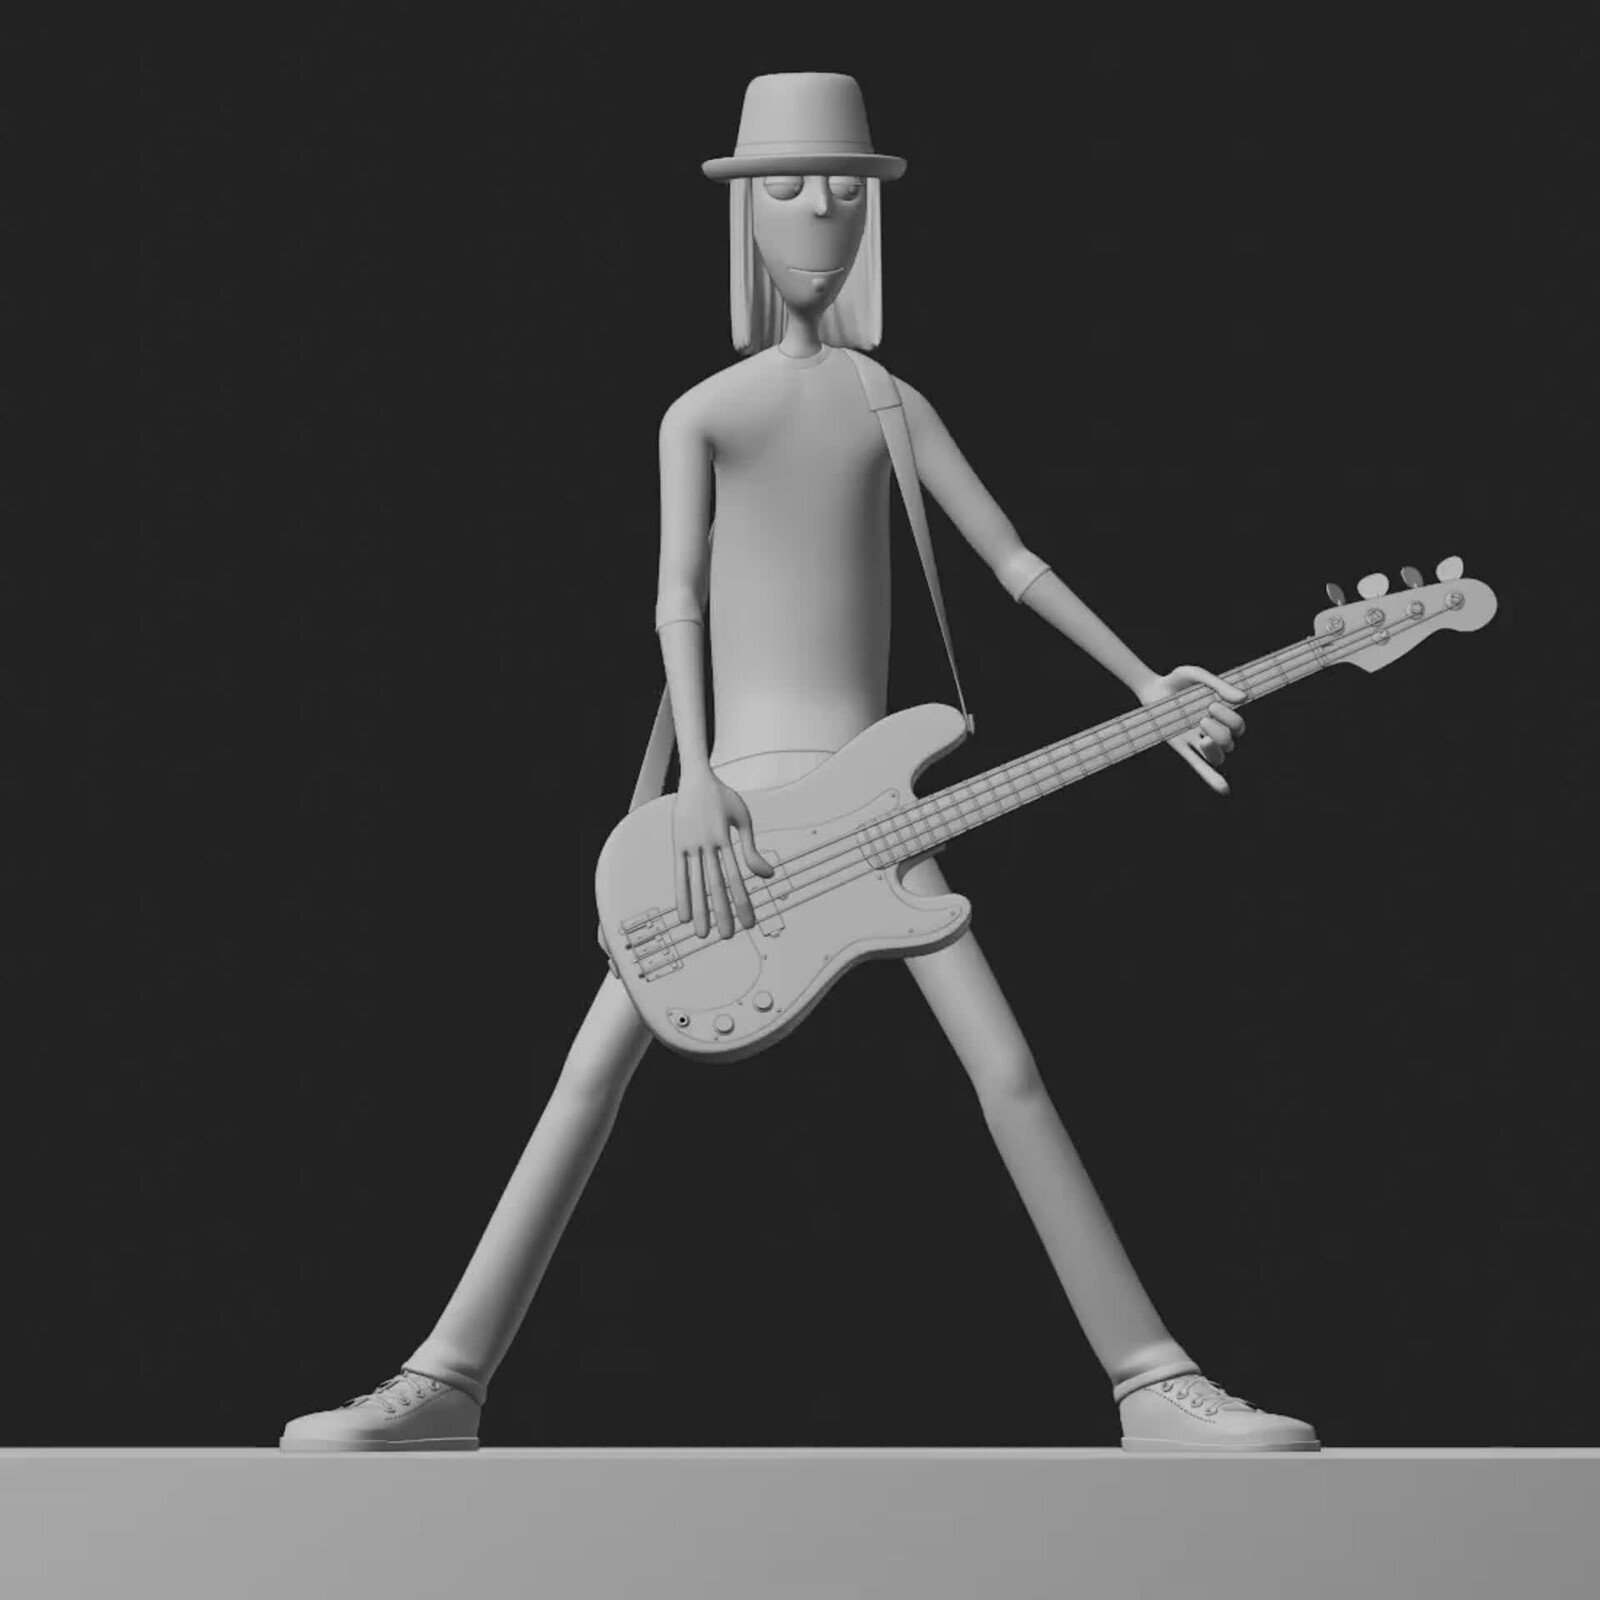 Josh from MAN BAND with bass turntable WIP